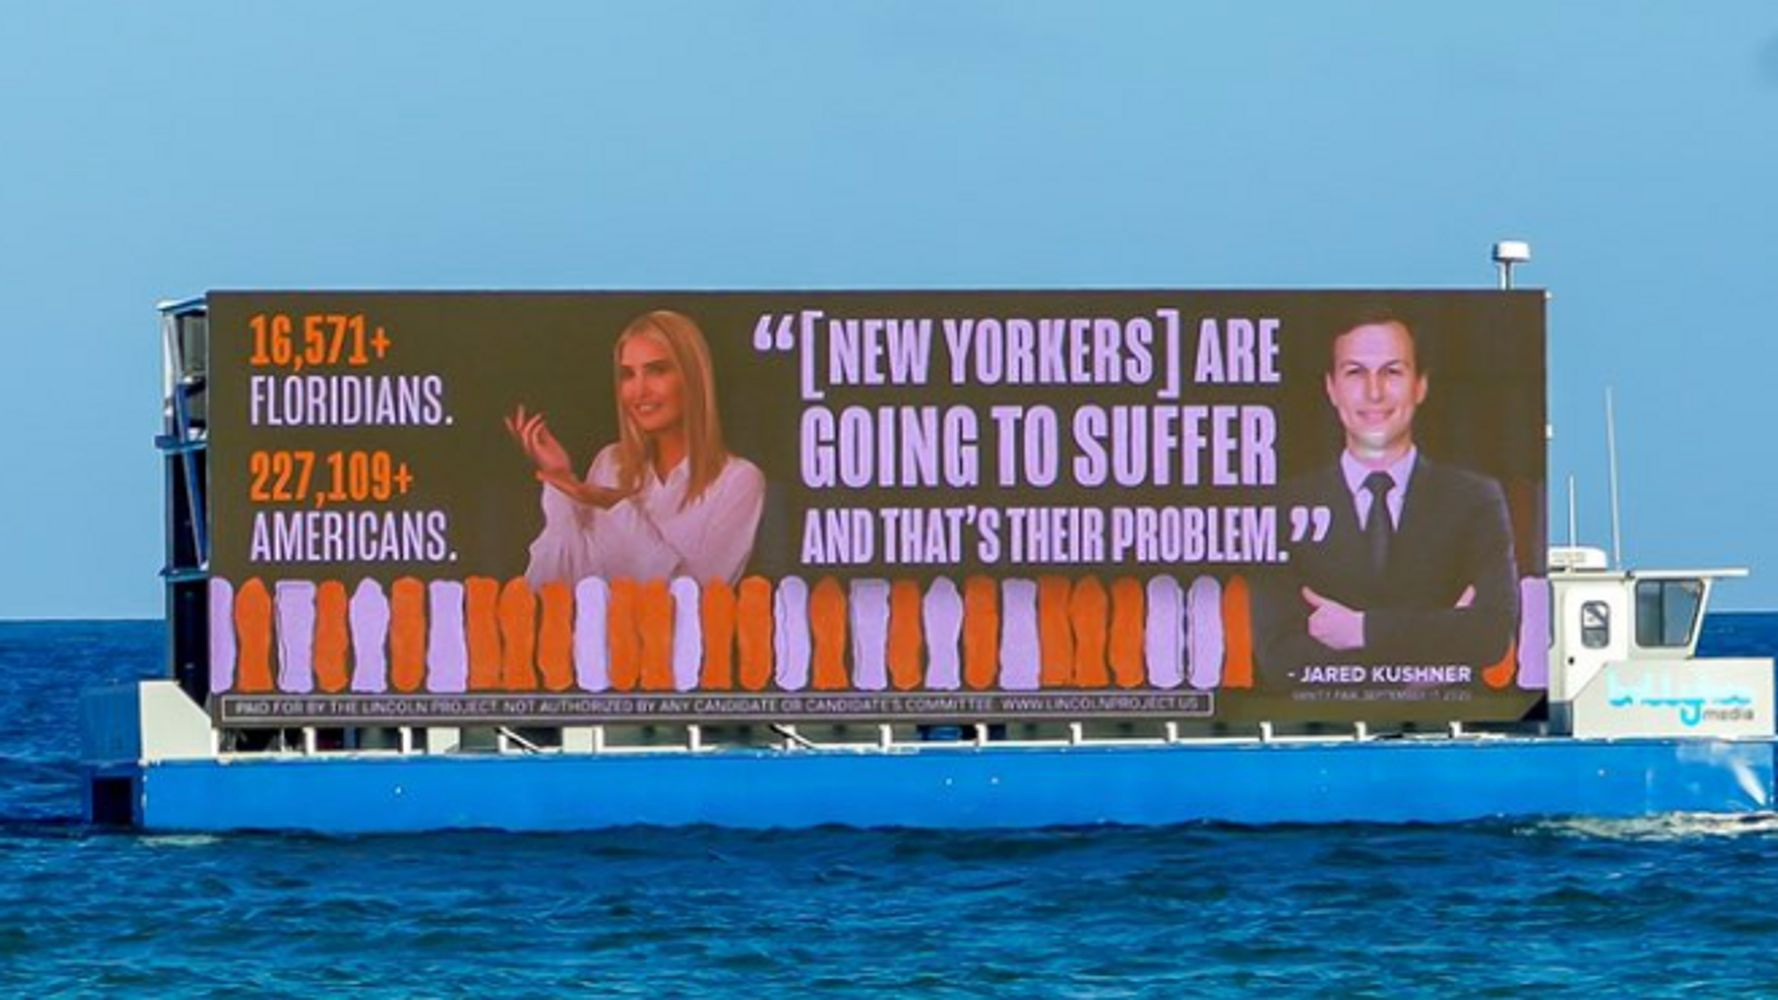 Billboards Taunting Ivanka Trump, Jared Kushner Sail Down To Mar-a-Lago